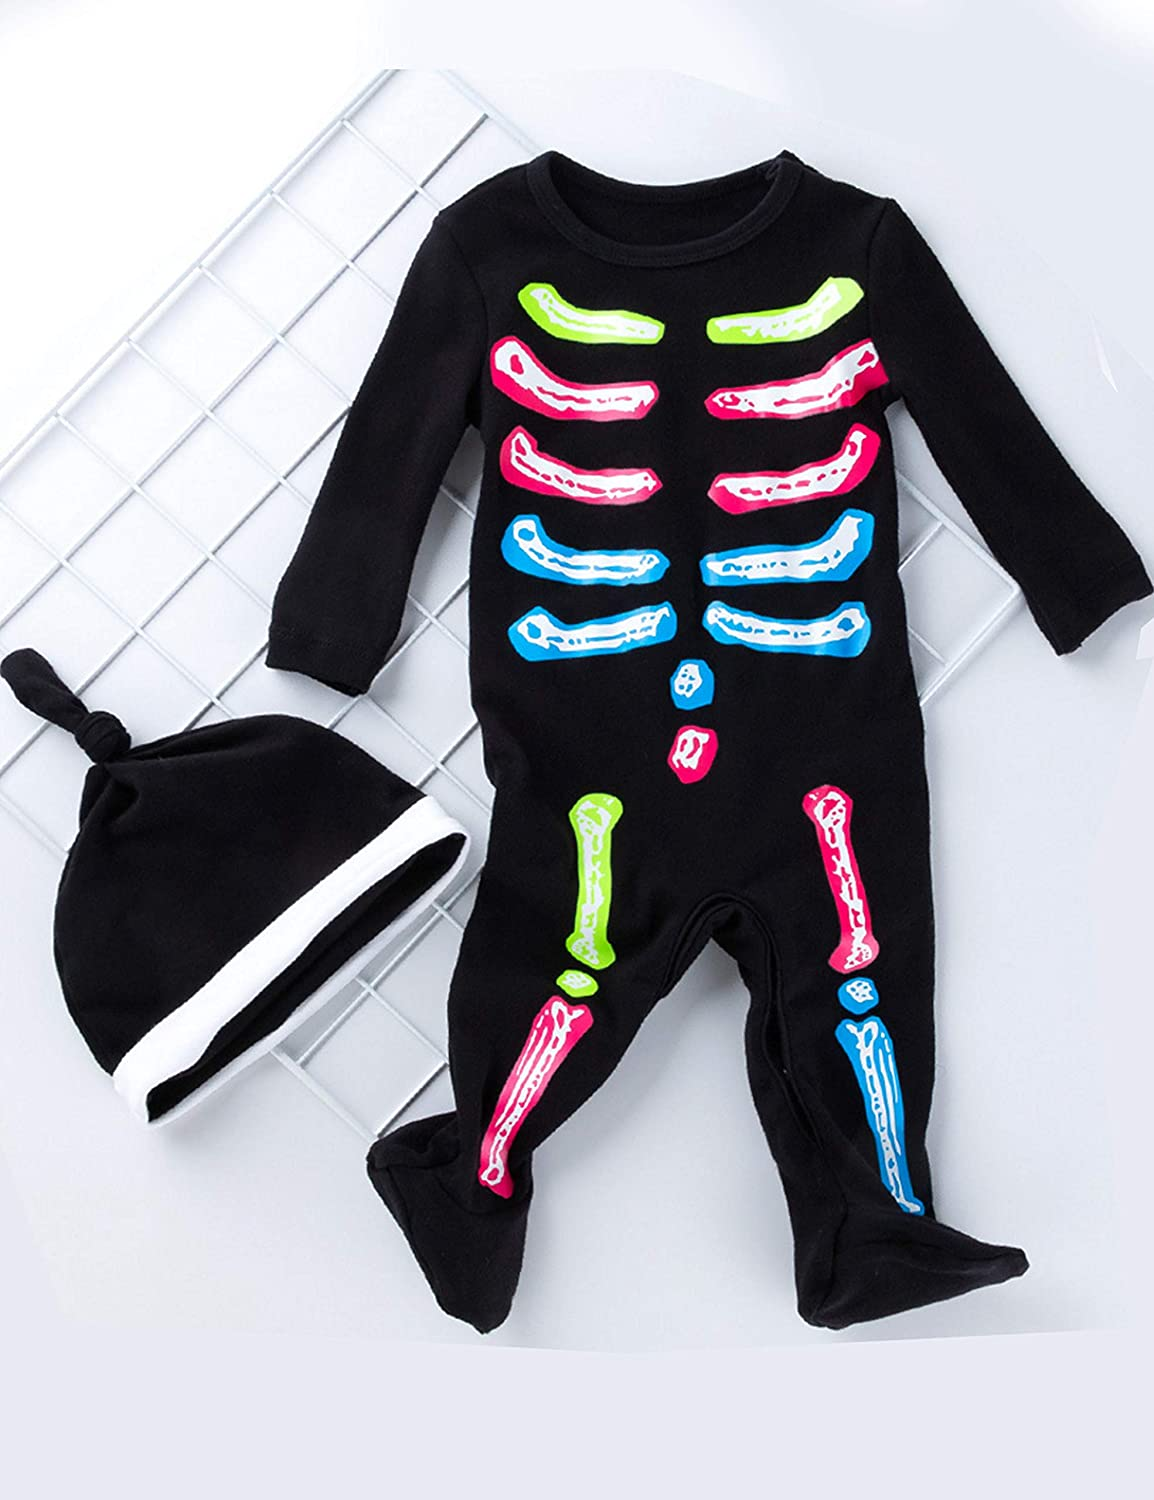 YuDanae Skull Bone Skeleton Romper Outfit Scary Halloween Costume for Toddler Baby Boys Girls 3-18 Months